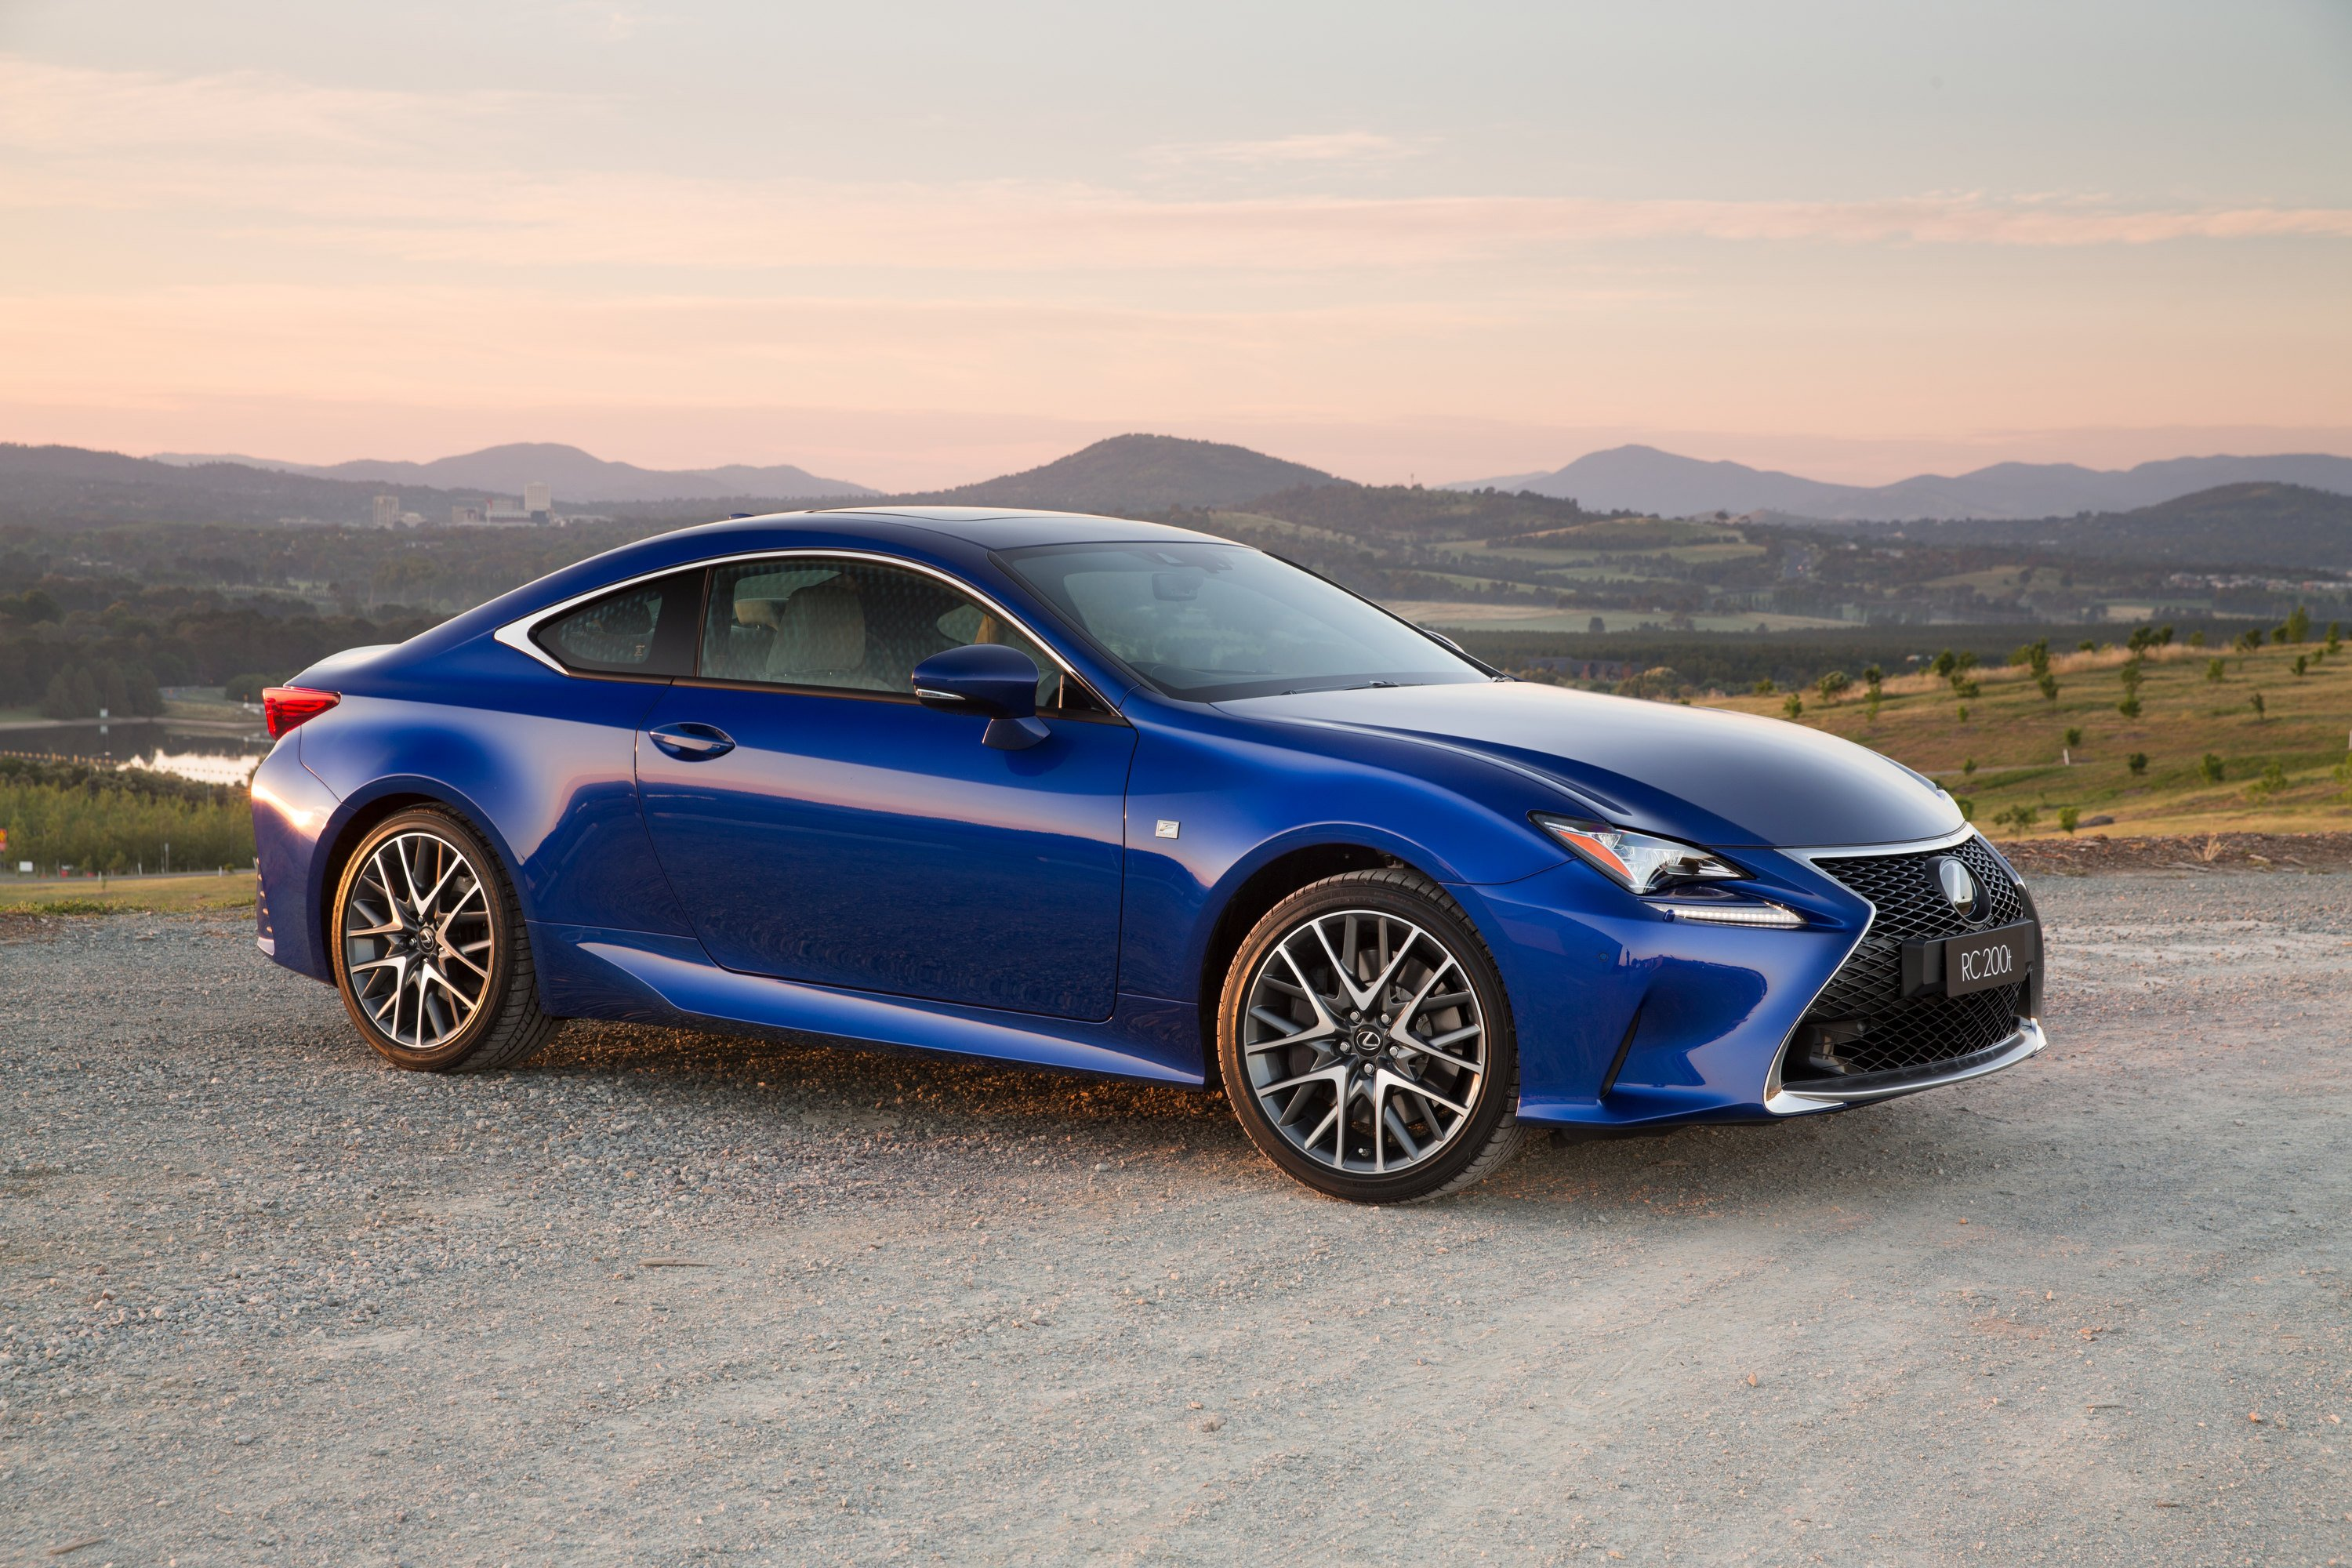 2016 Lexus Rc Coupe Pricing And Specifications Entry Level Turbo Model Added Prices Adjusted